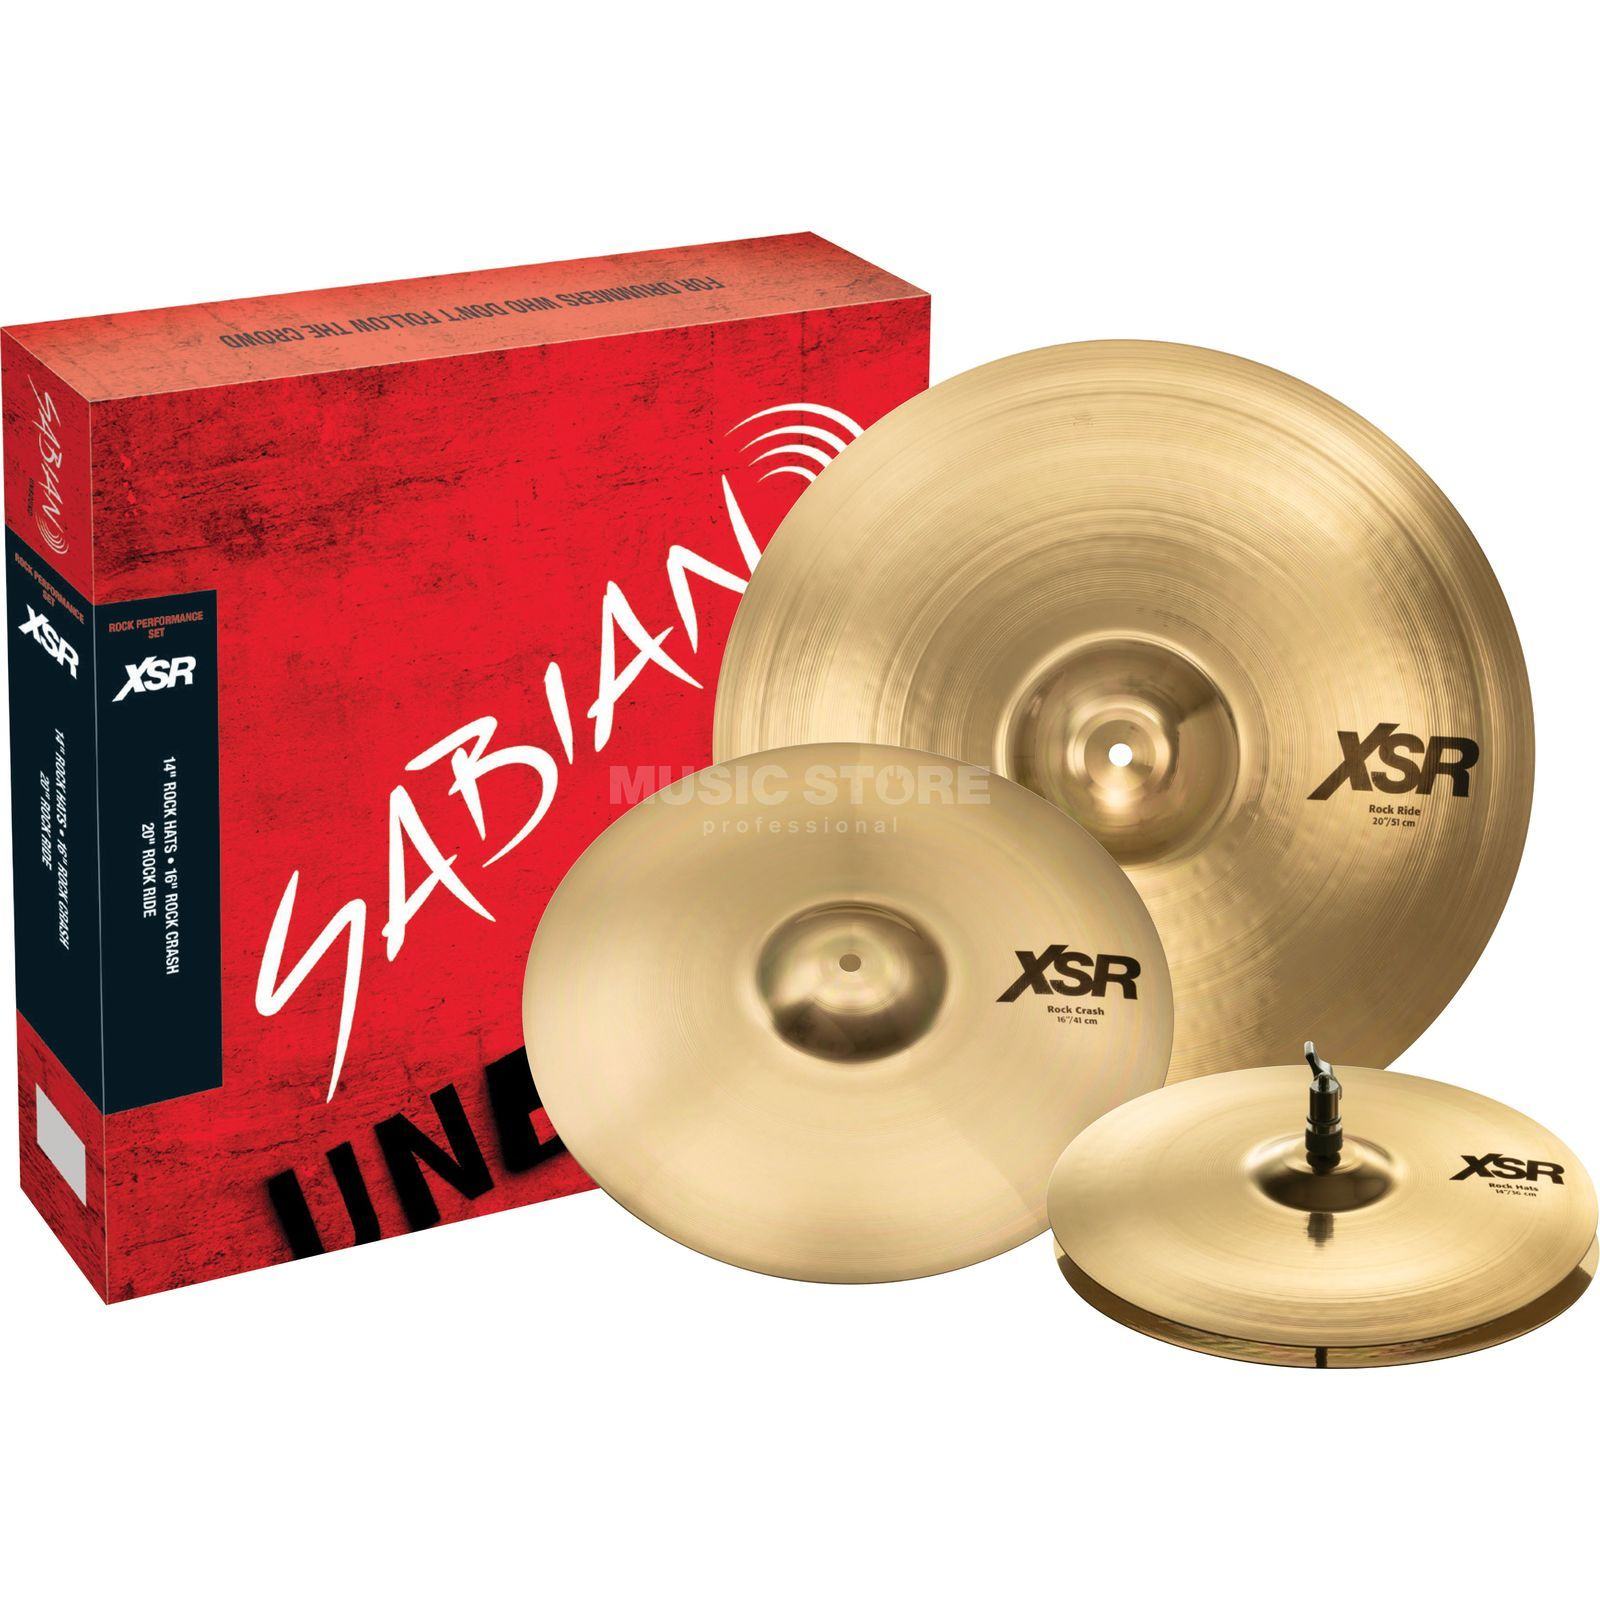 Sabian XSR Rock Performance Set Изображение товара